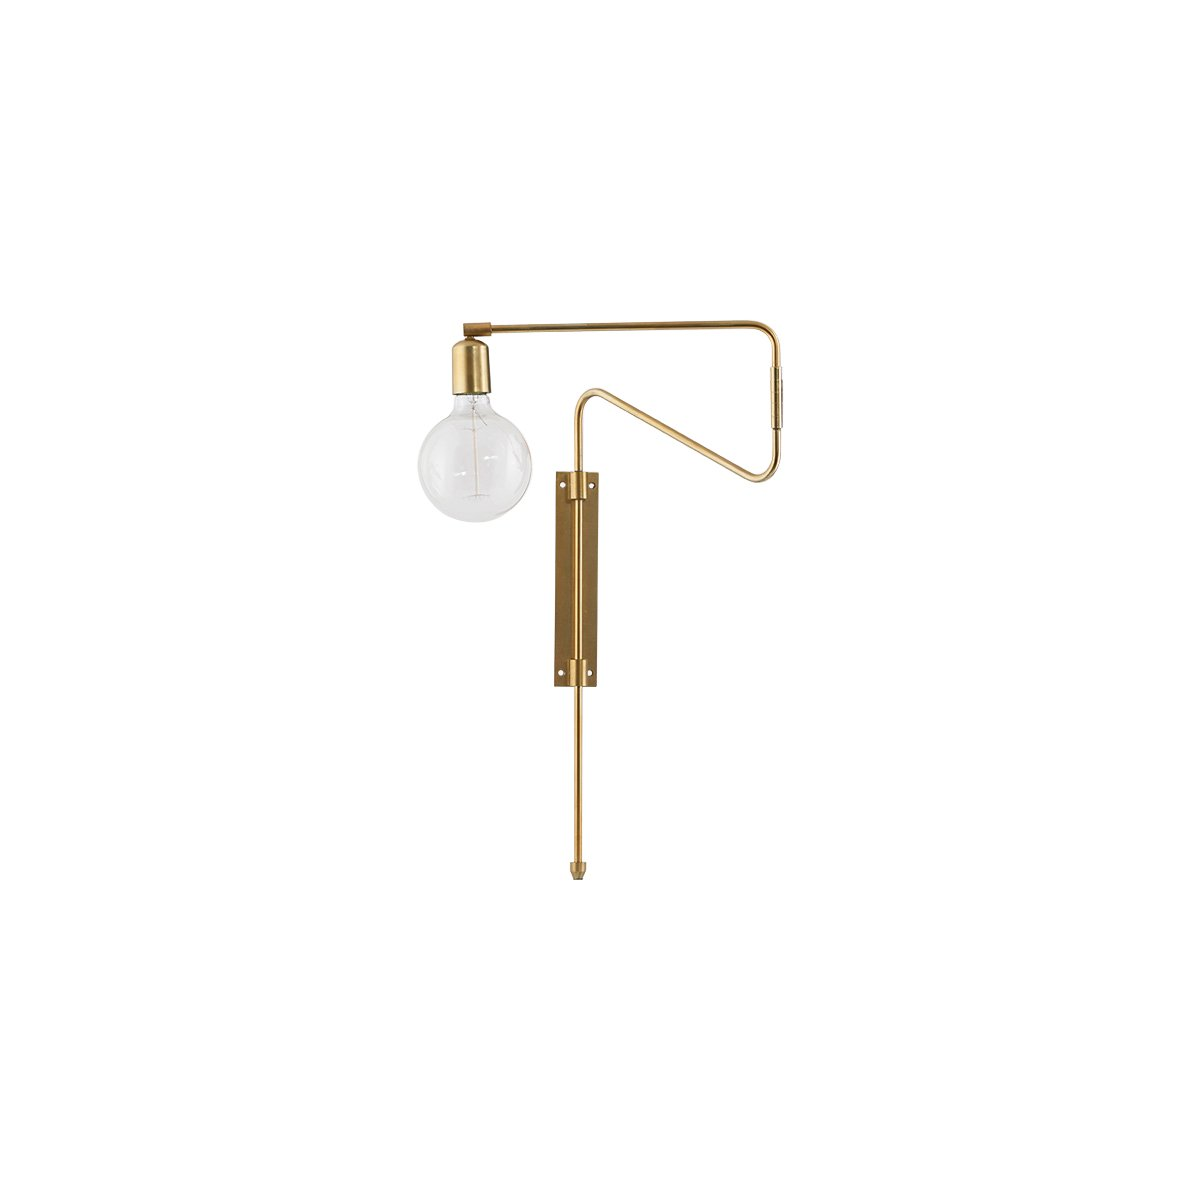 House Doctor - Swing Wall Lamp Small - Brass (cb0212/203660212)